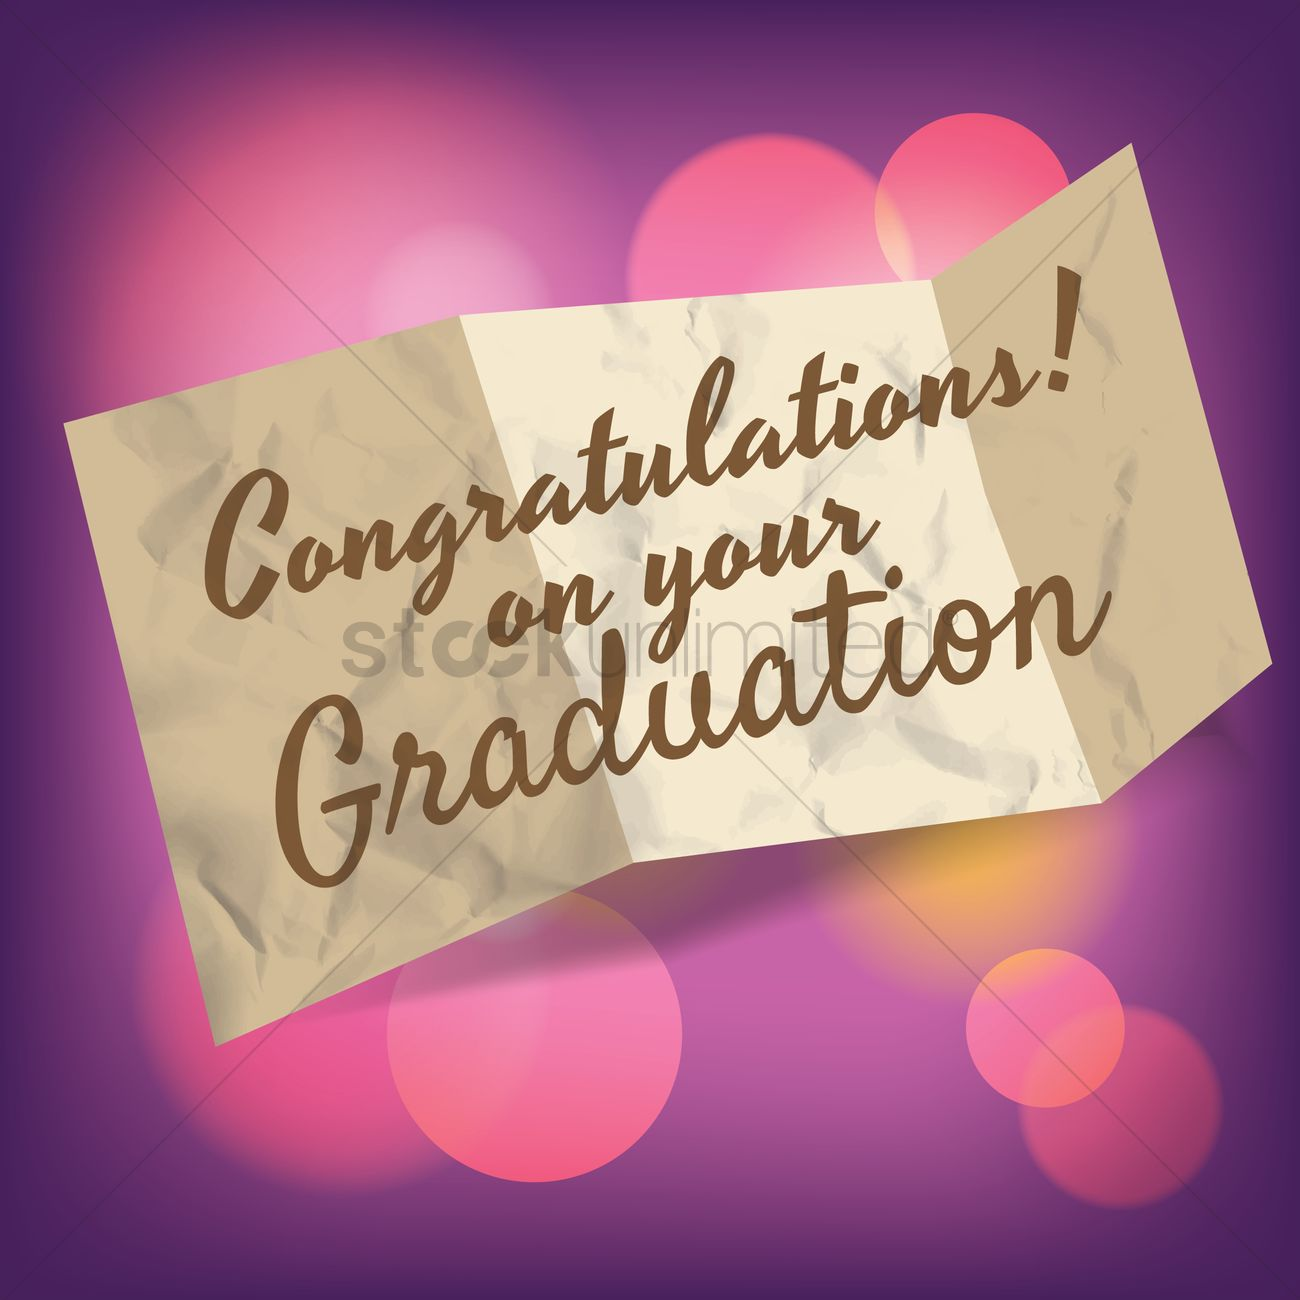 congratulations on your graduation greeting vector graphic